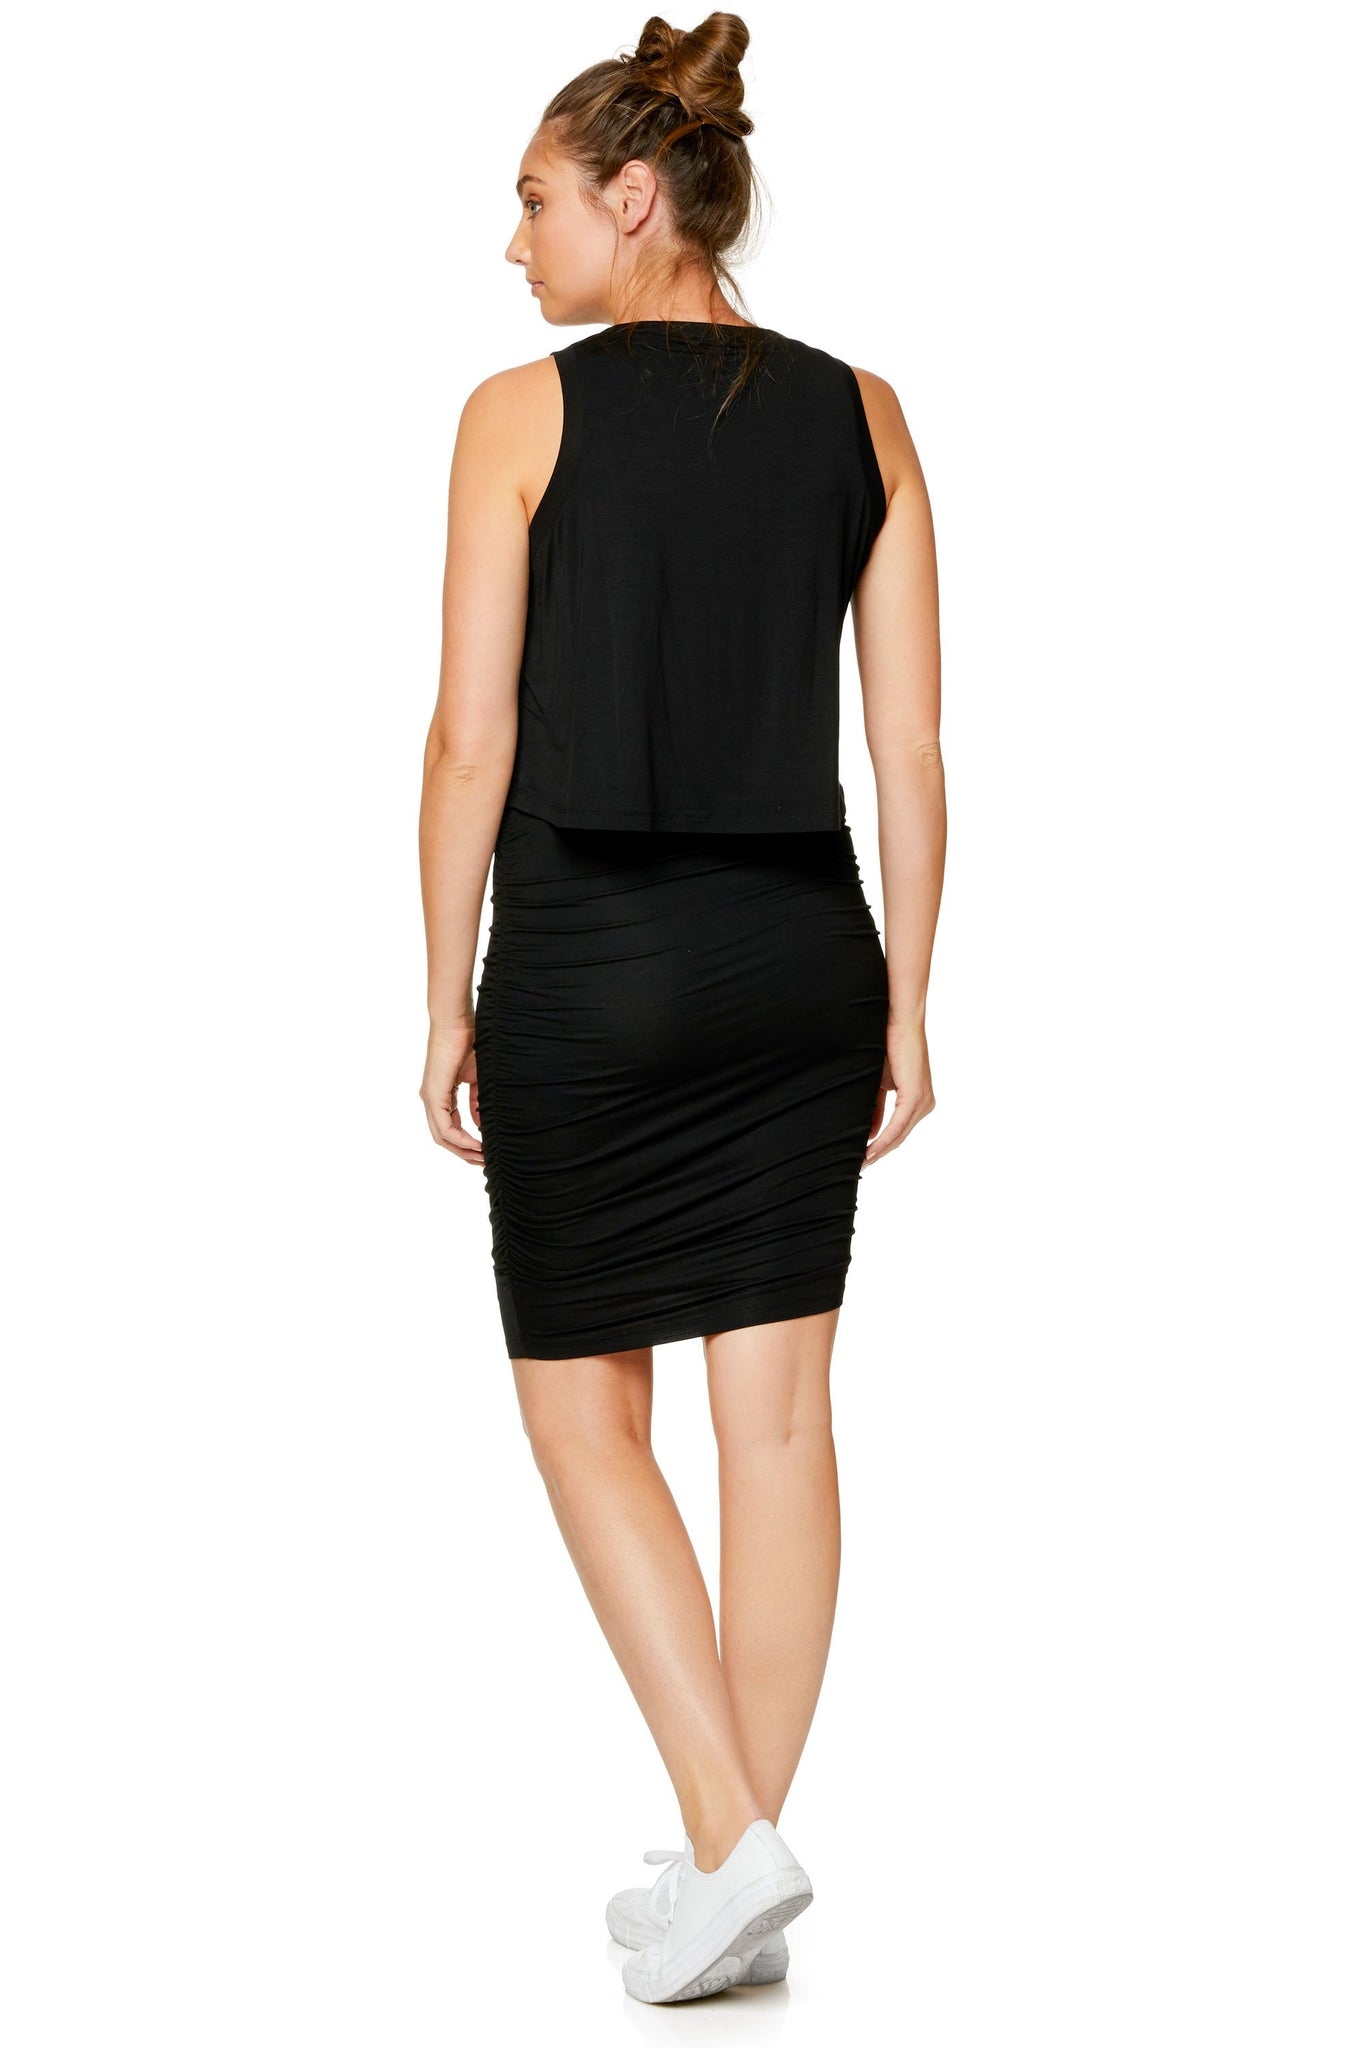 Maternity bodycon dress - Black 7